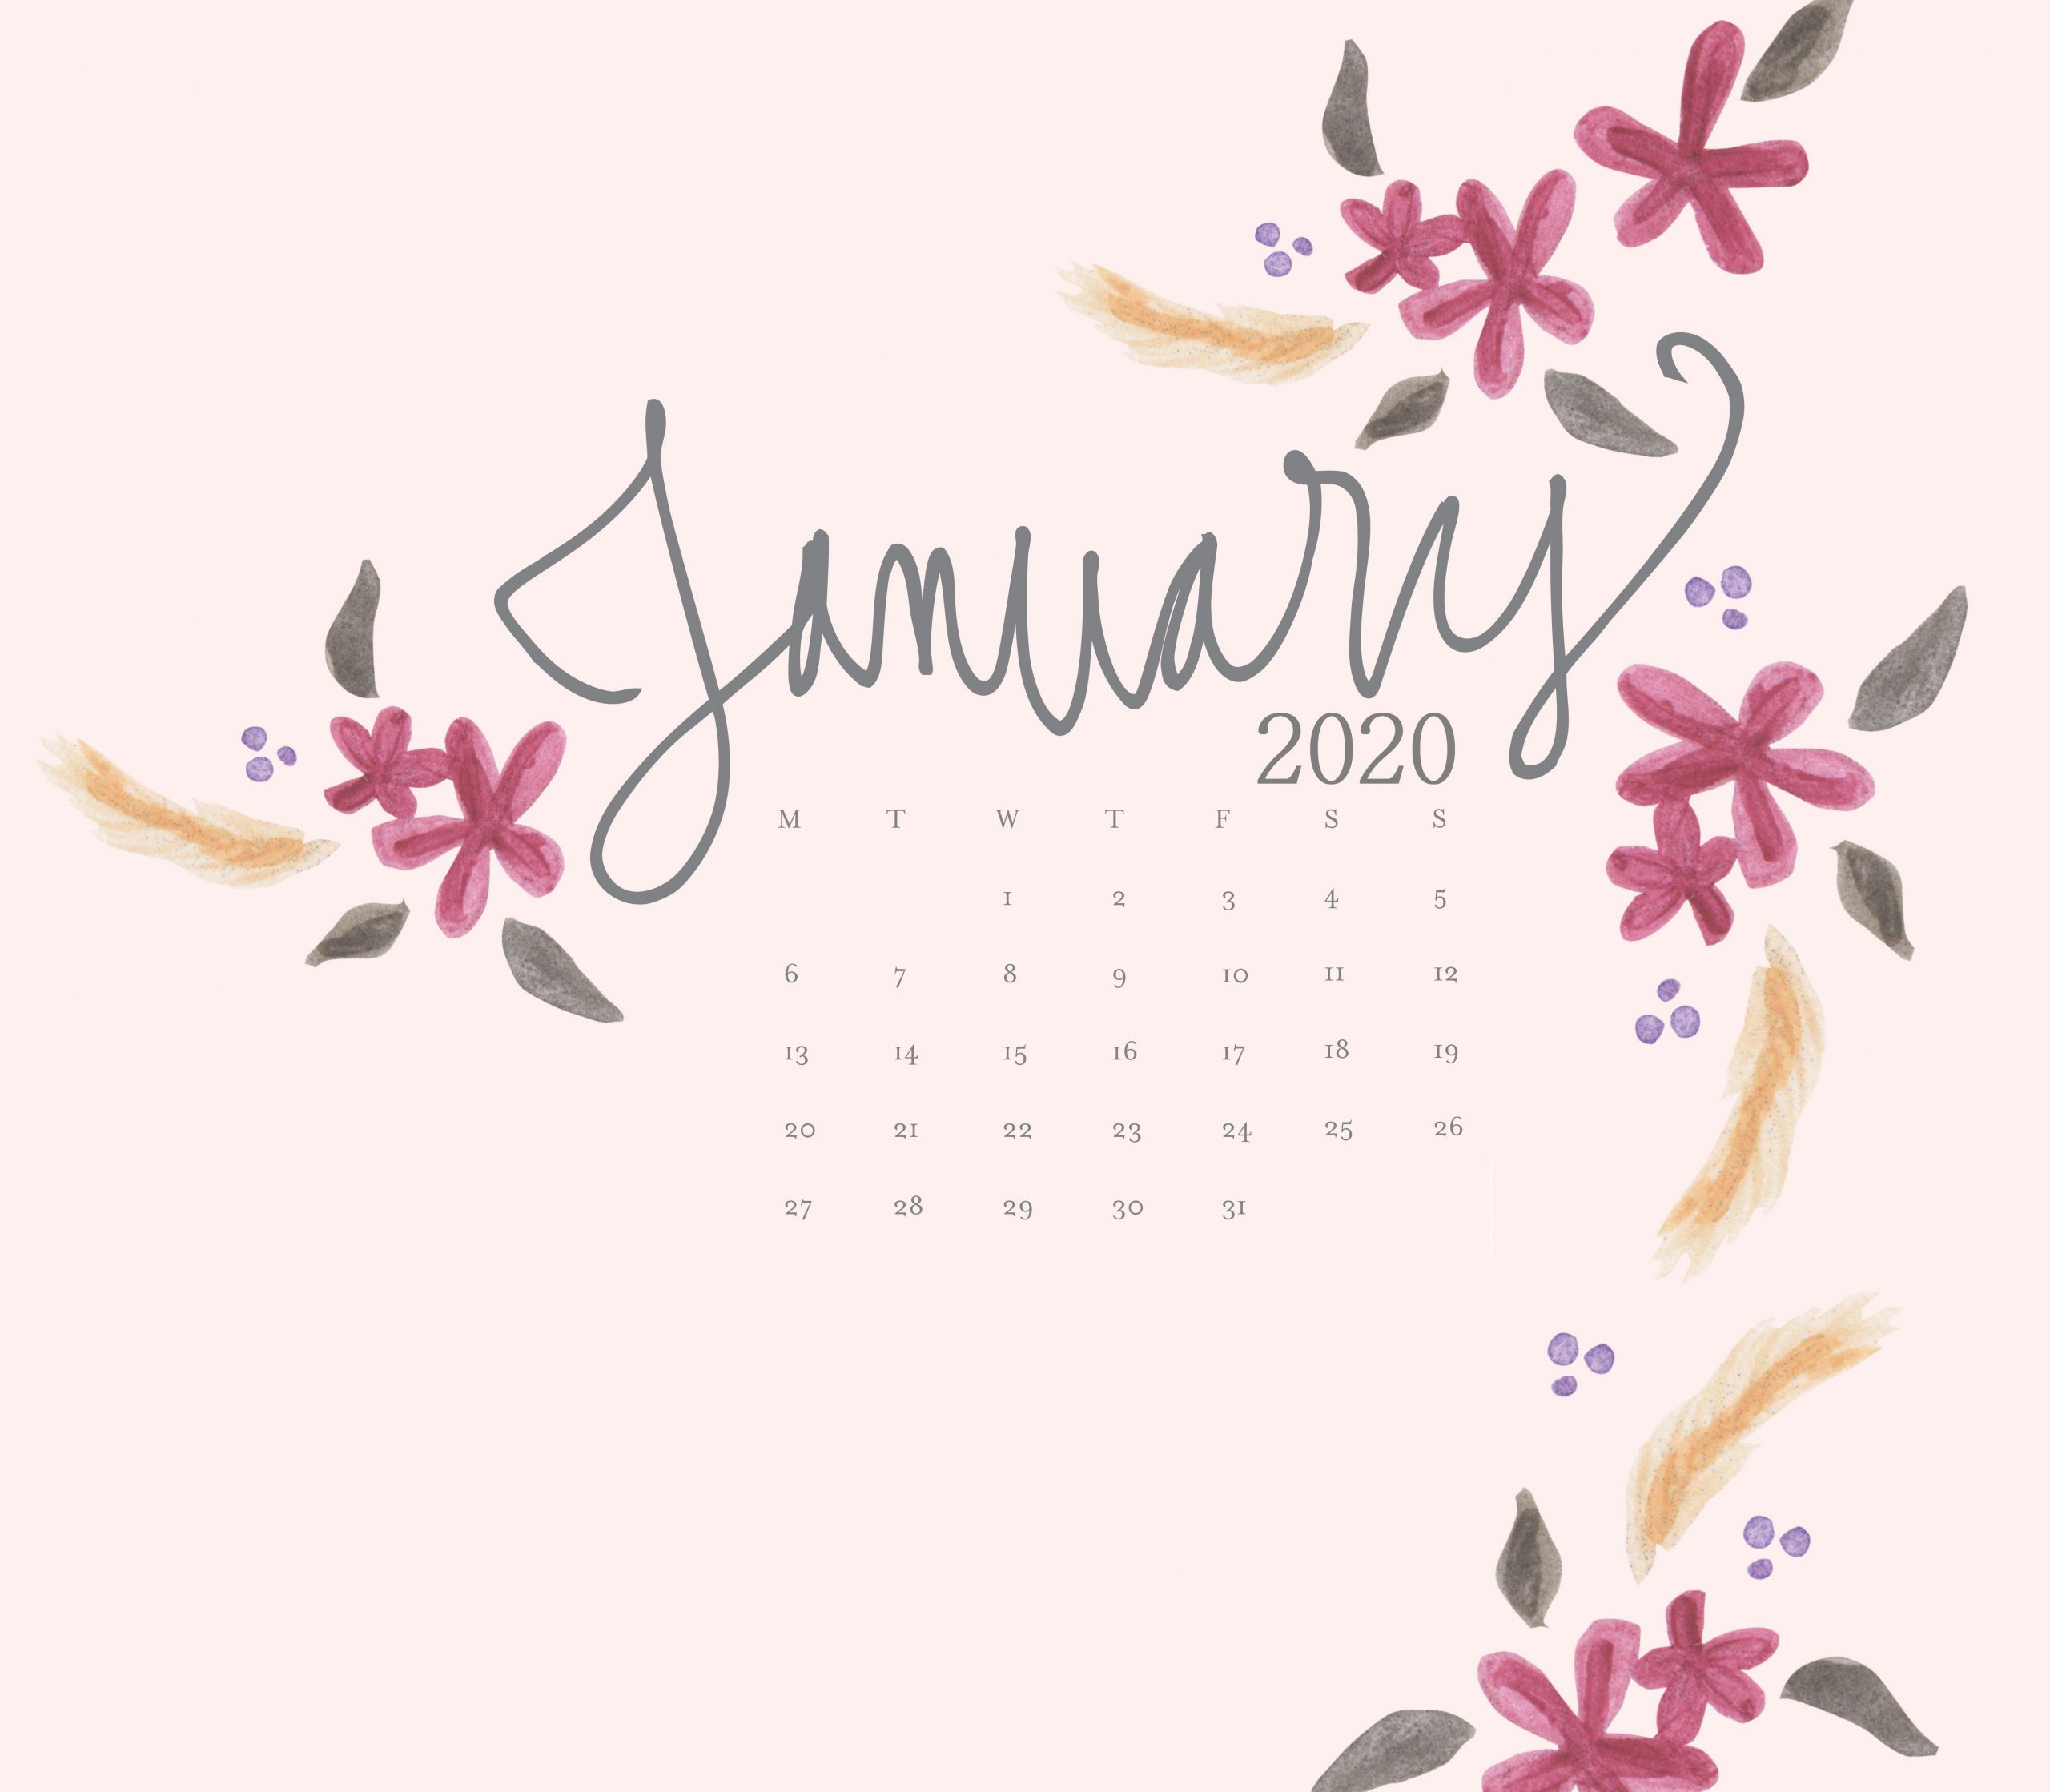 January 2020 Desktop Calendar Wallpaper Max Calendars 2560x2238